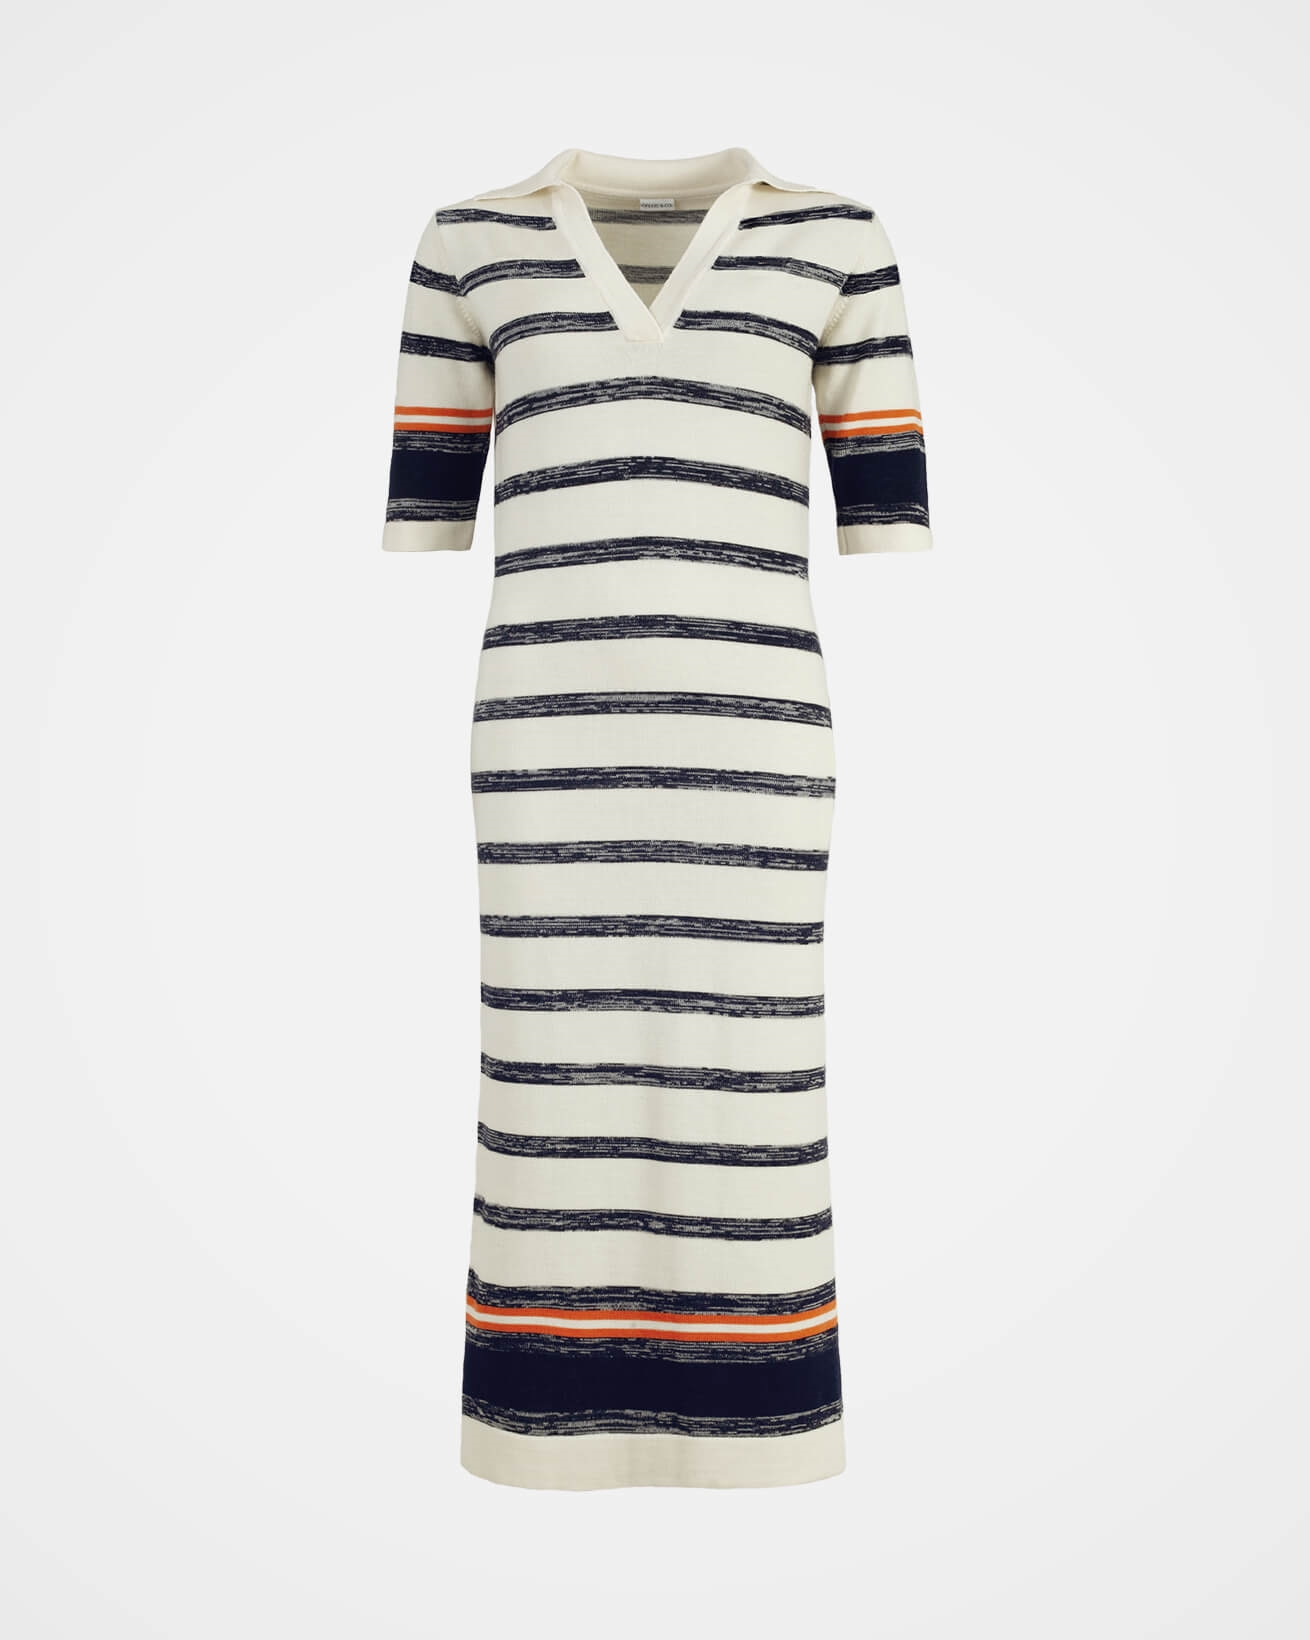 Merino Ombre Stripe Maxi Dress - Medium - Ecru Multi - 1445